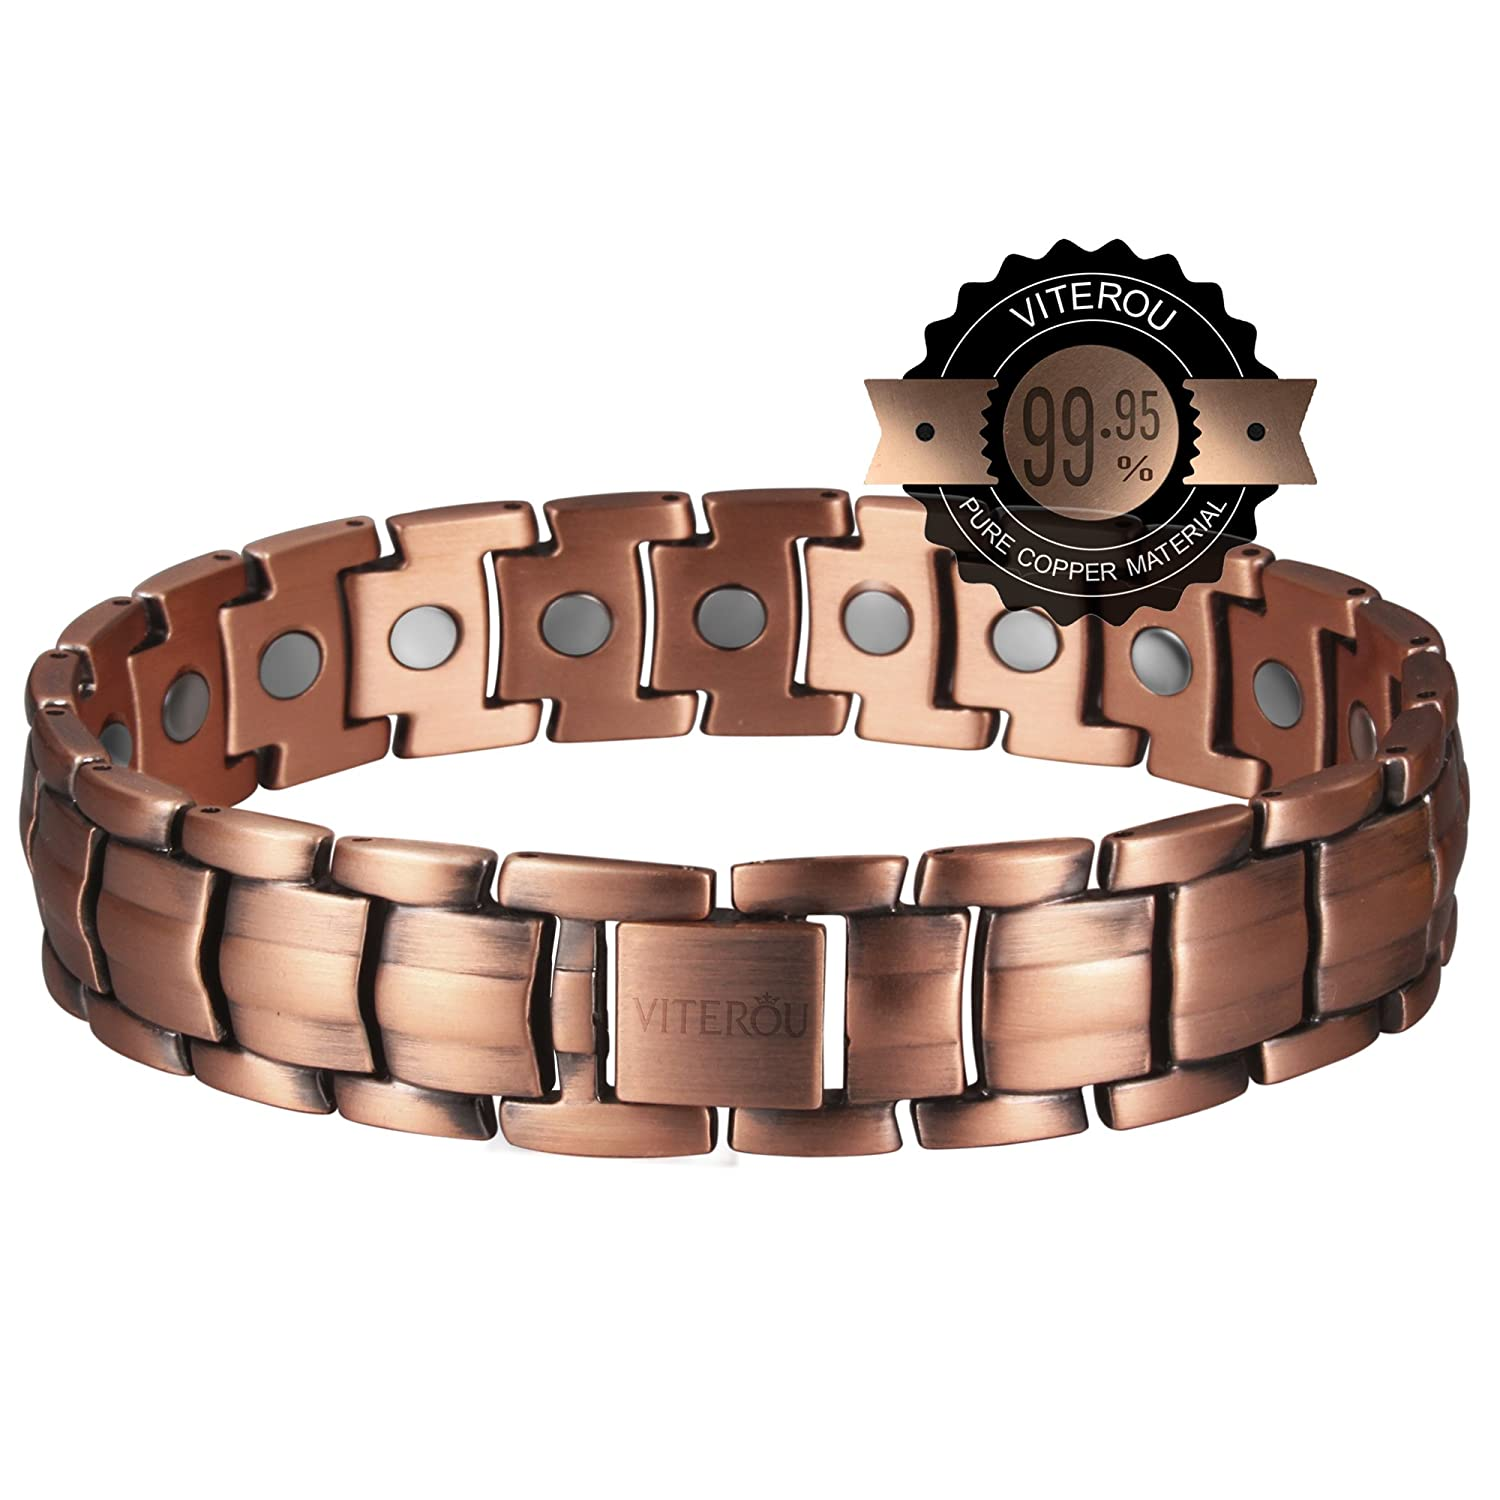 Amazon: Viterou Mens Magnetic Pure Copper Bracelet With Magnets For  Arthritis Pain Relief,3500 Gauss: Viterou: Jewelry